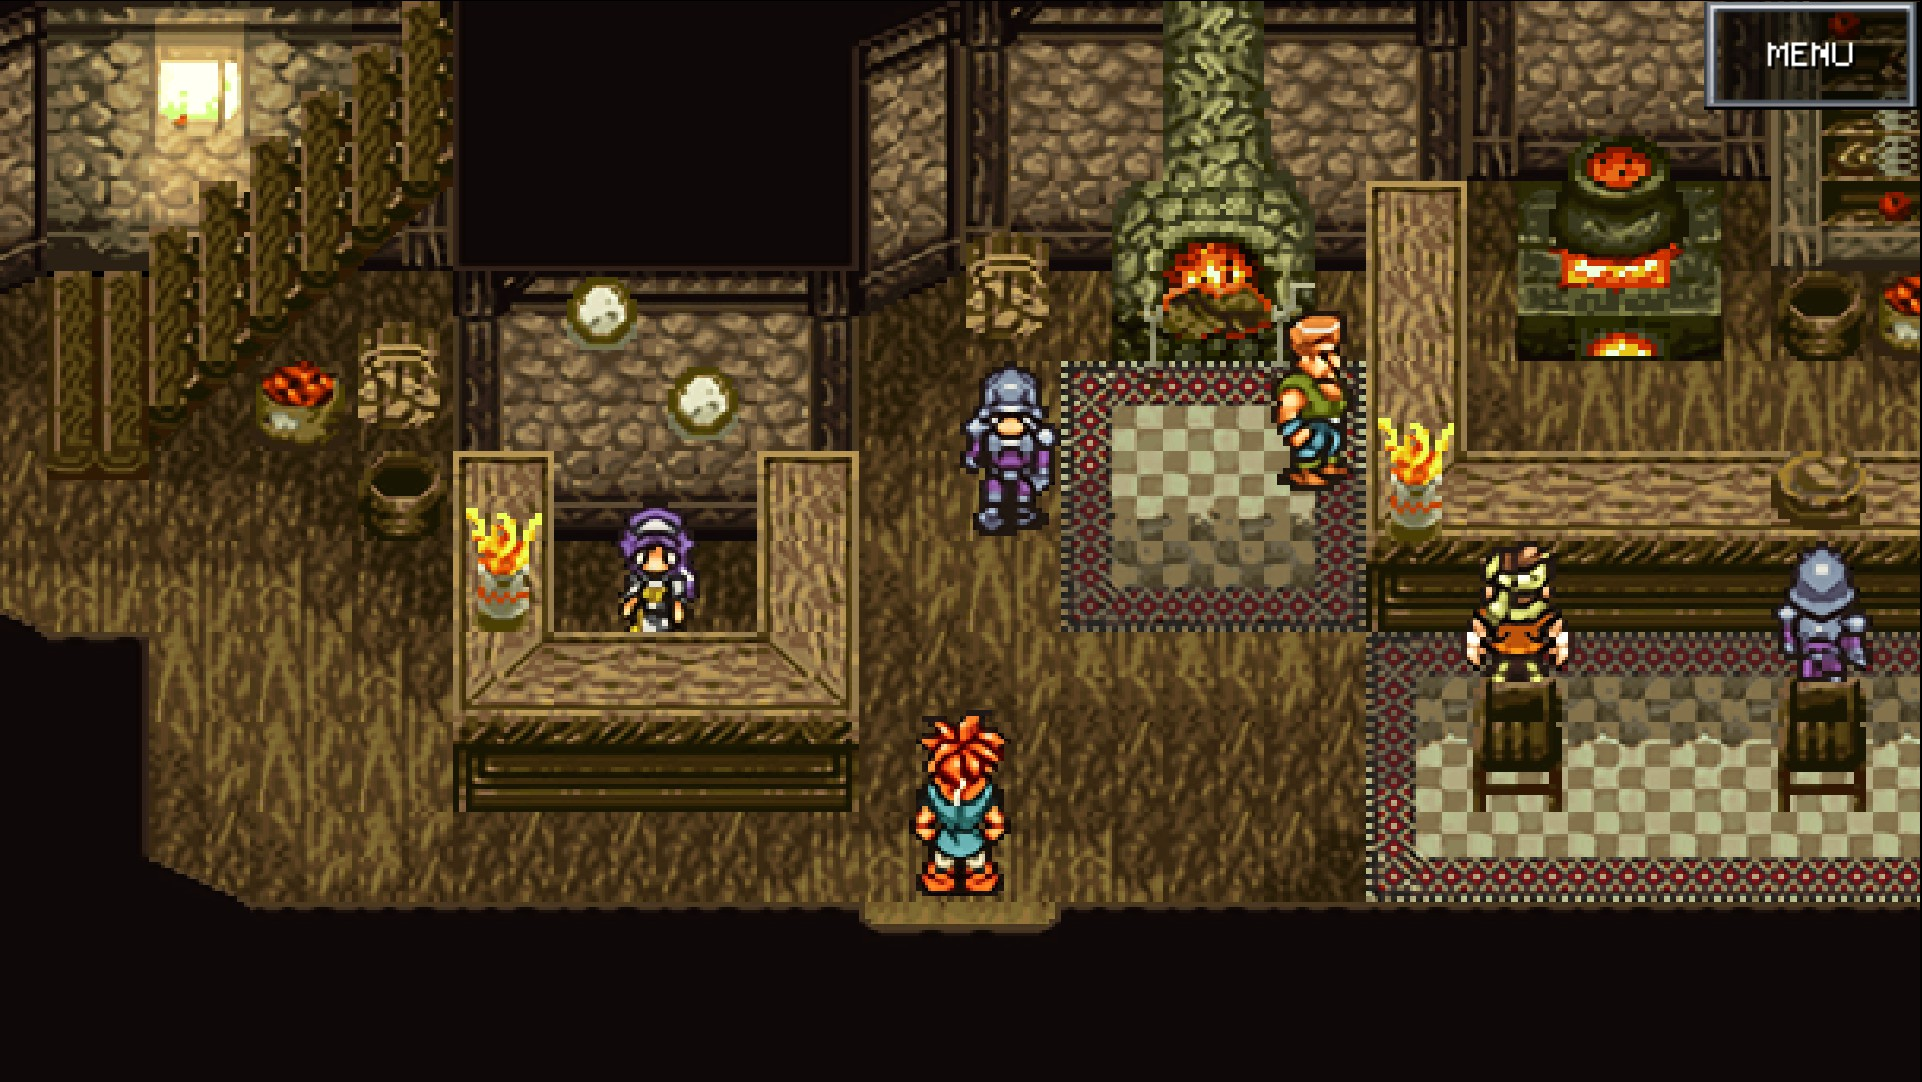 Steam version of Chrono Trigger patched, looks better already